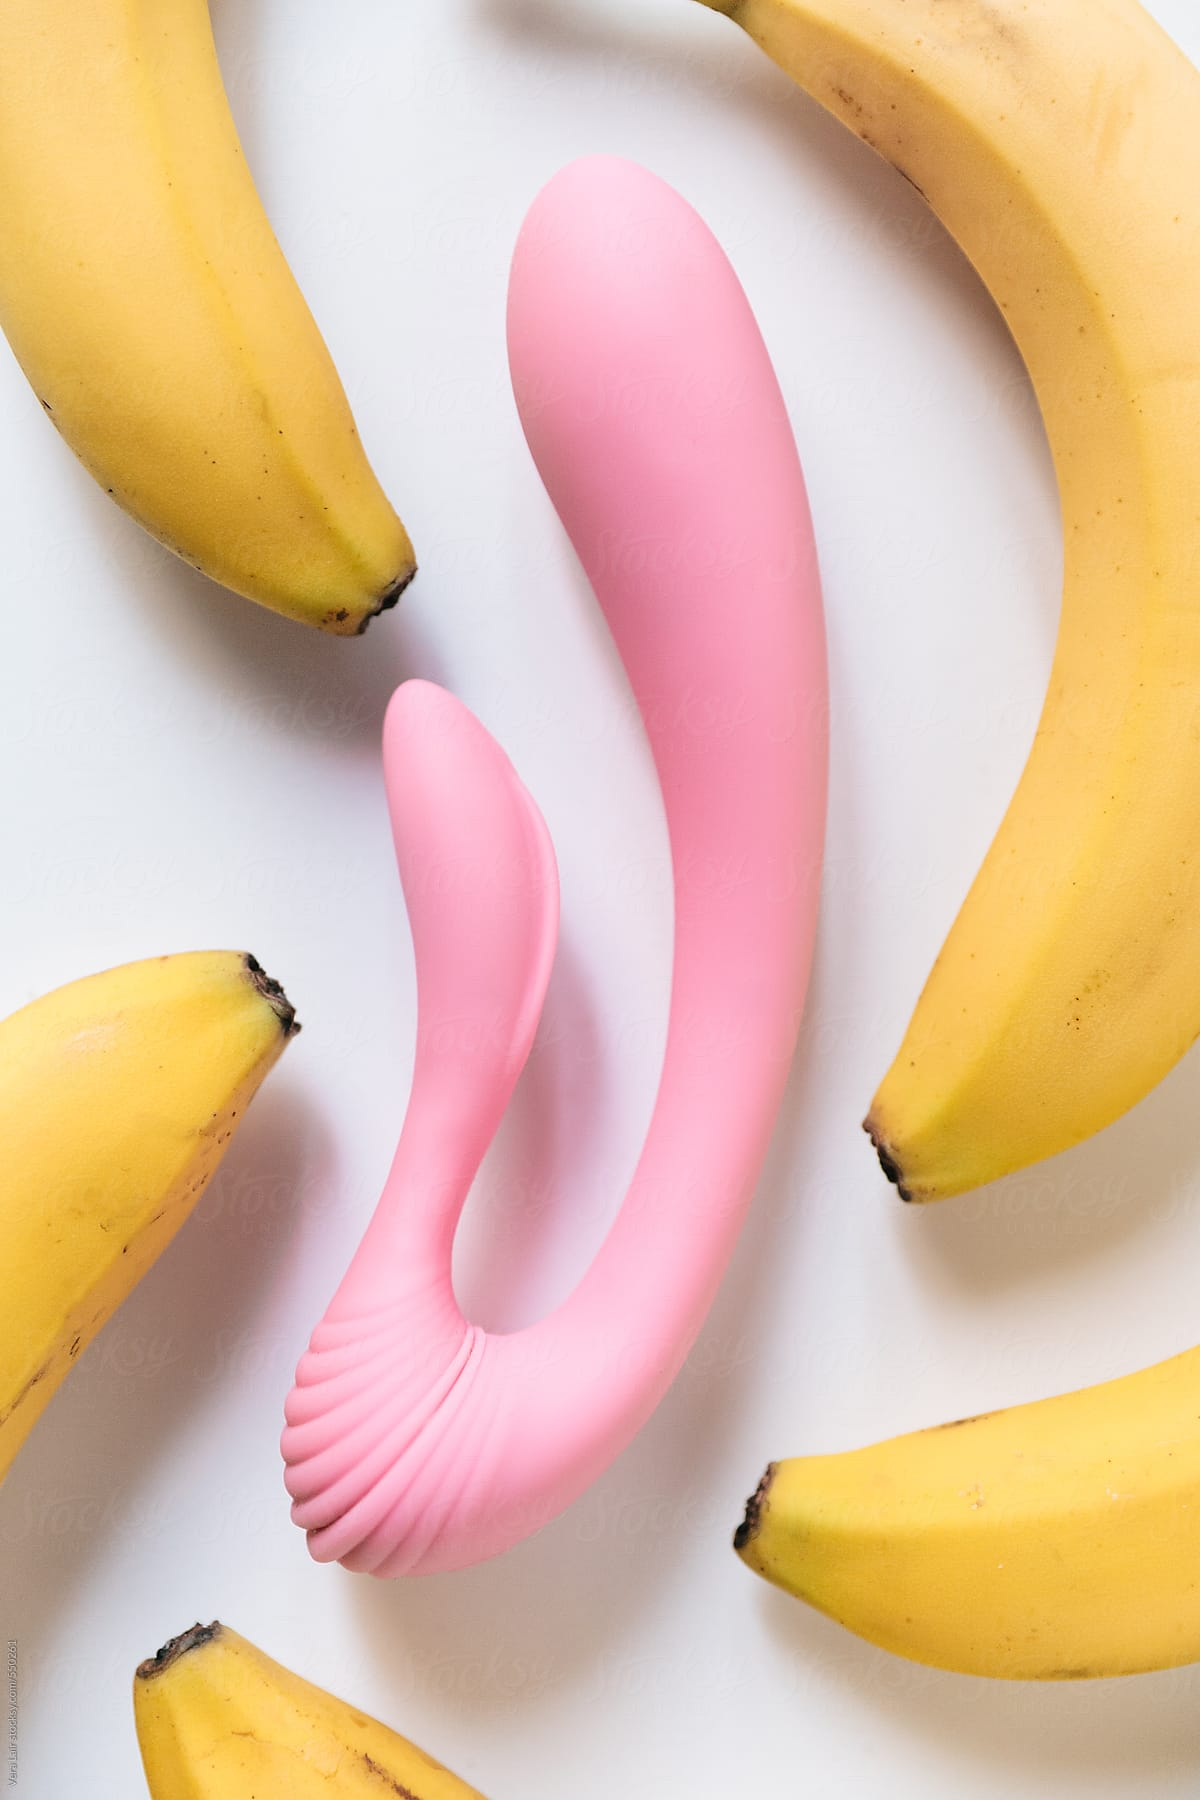 Is bananas a good sex toy